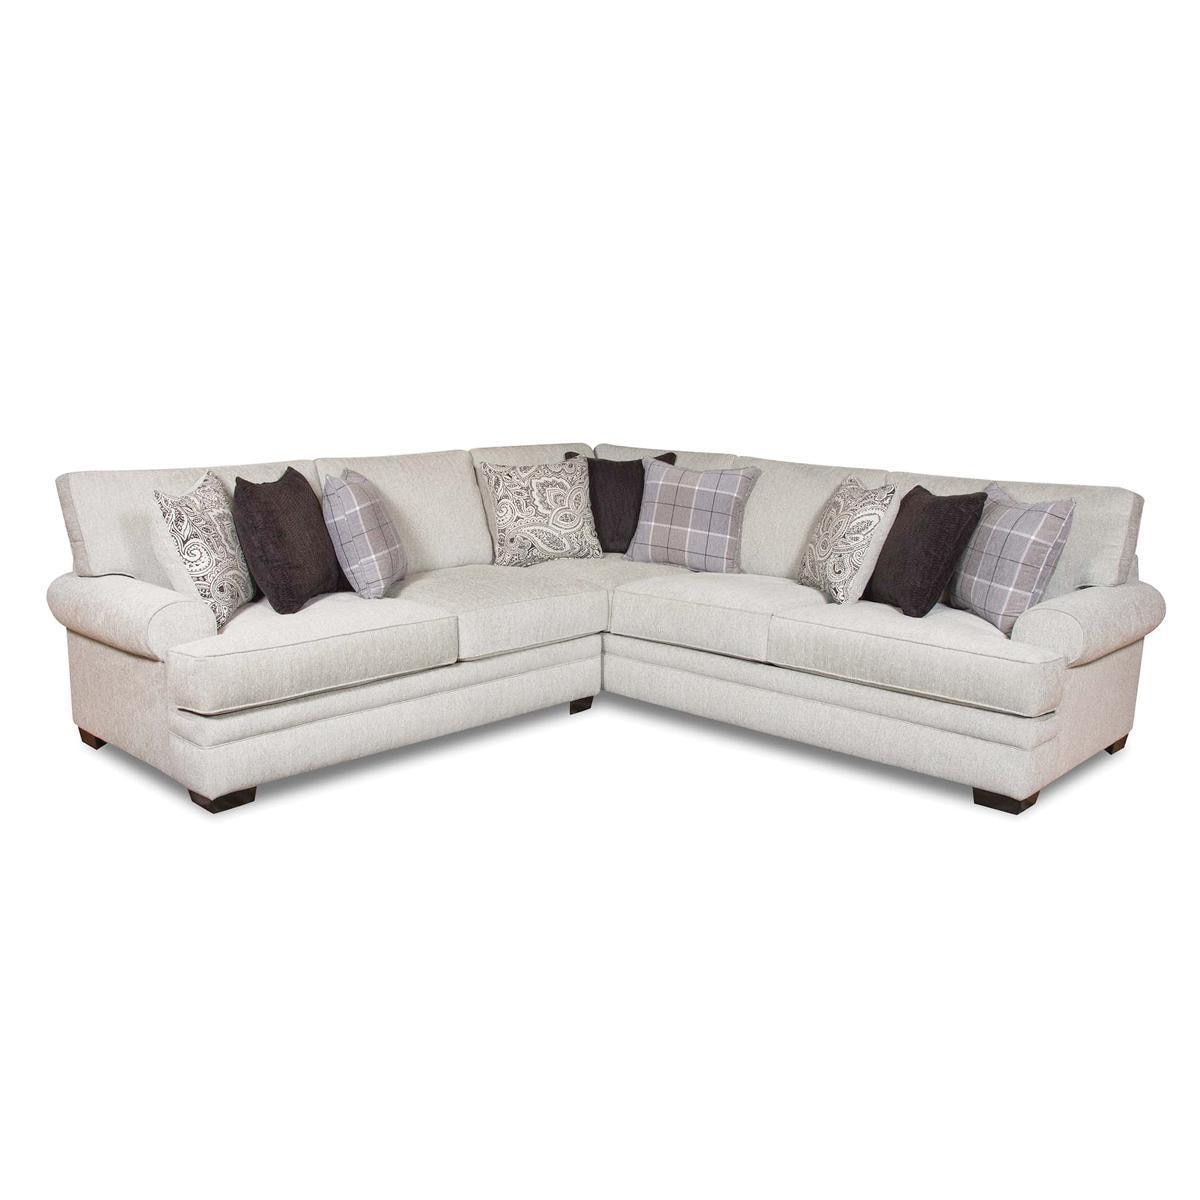 Awesome Henderson 2 Piece Sectional In Griffin Menswear Nebraska Caraccident5 Cool Chair Designs And Ideas Caraccident5Info